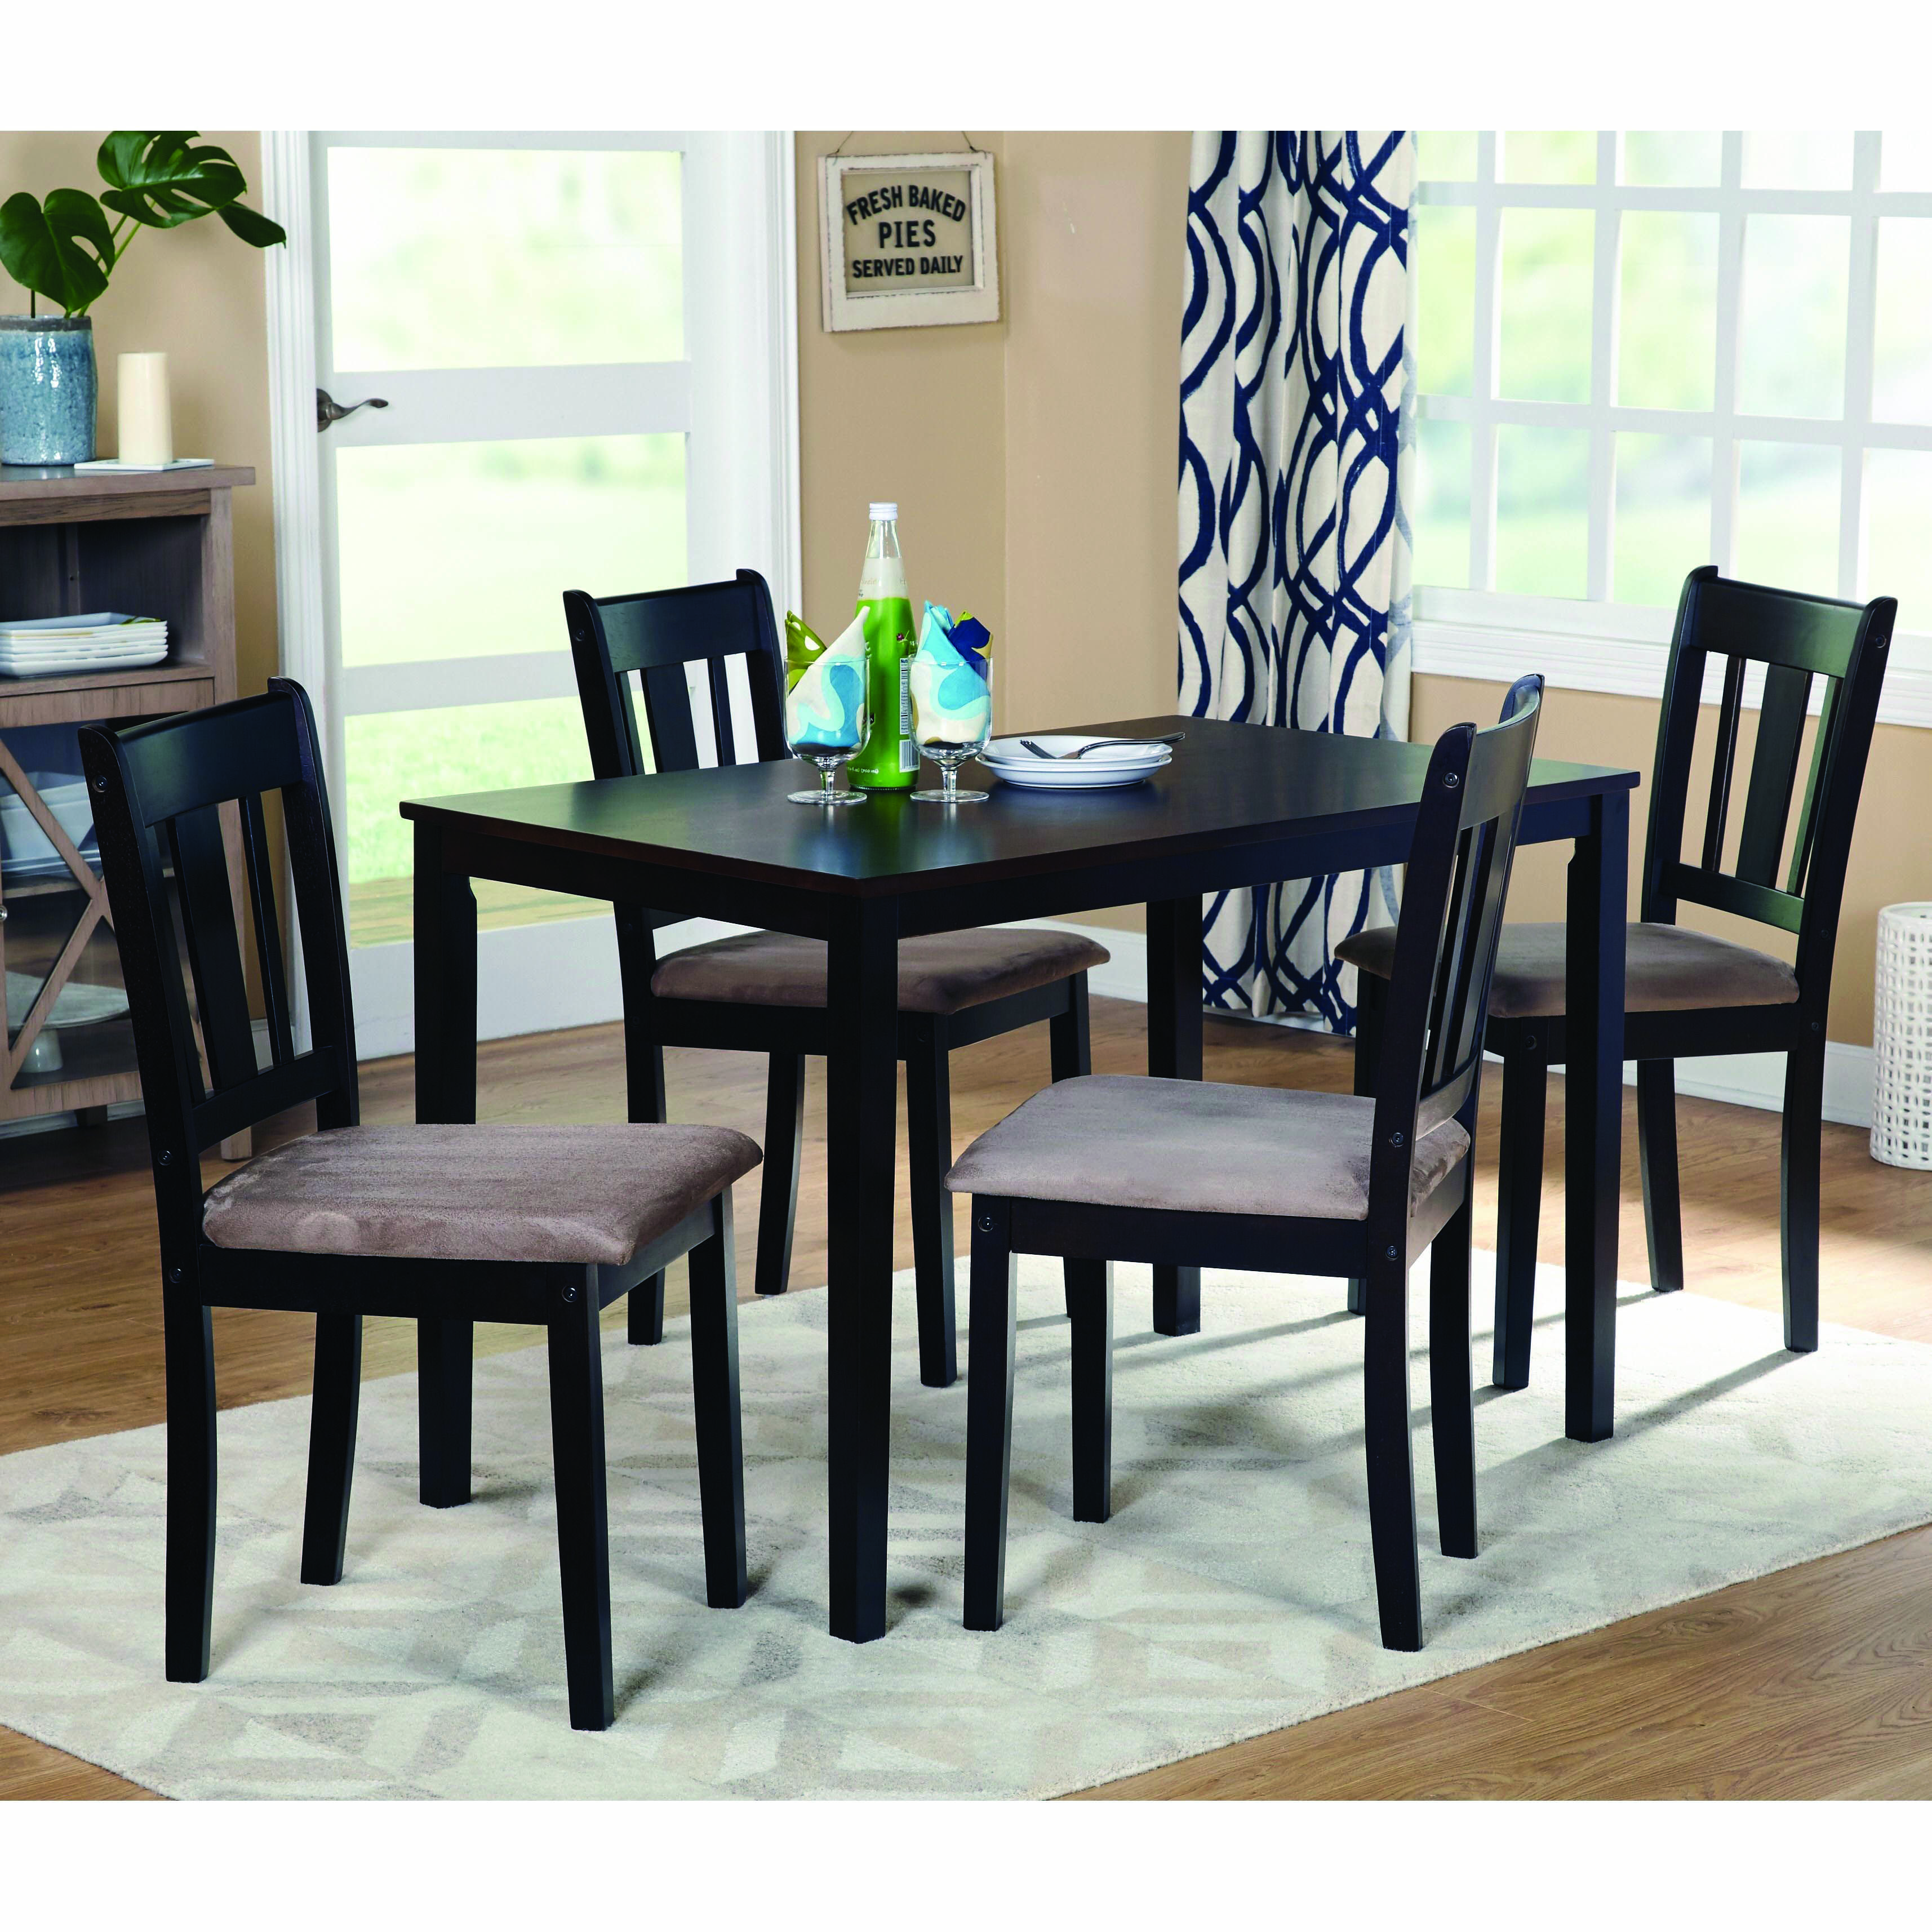 Mxhr Was Here Modern Dining Room Dining Room Sets Formal